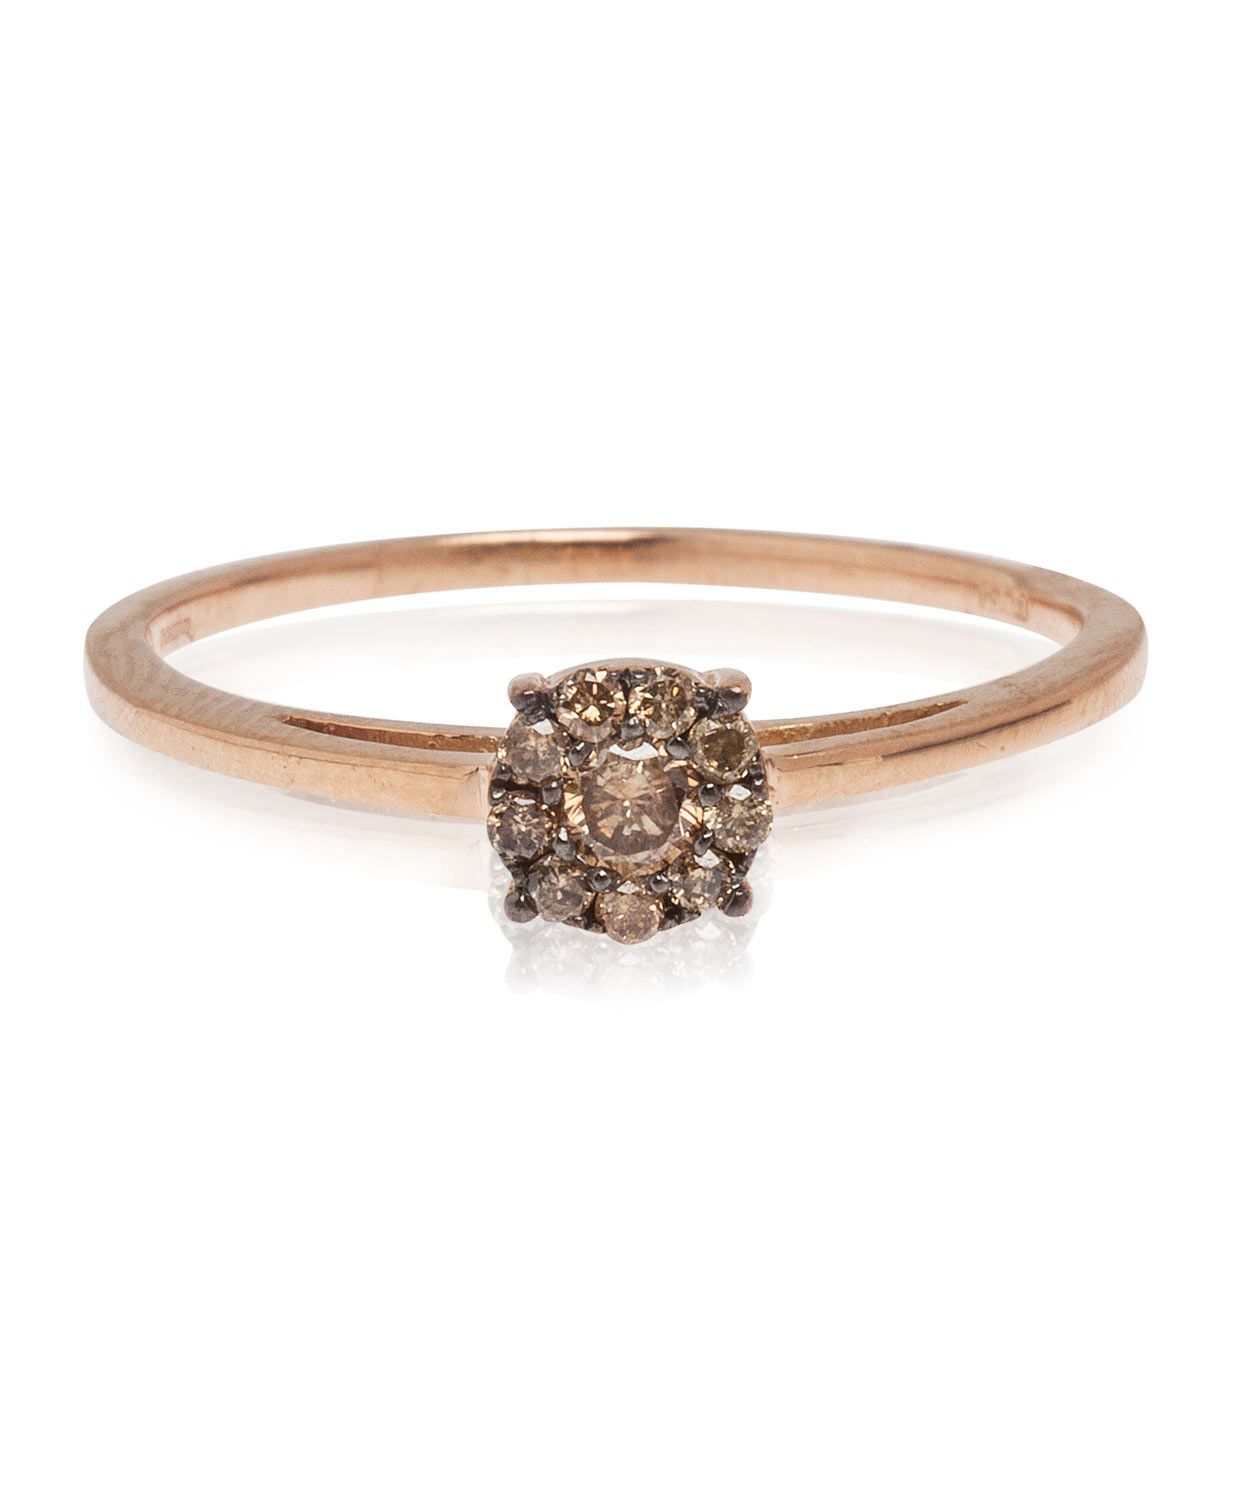 Champagne Diamond Rose Gold Cluster Ring, Suzanne Kalan. Shop the latest rings from the Suzanne Kalan collection online at Liberty.co.uk